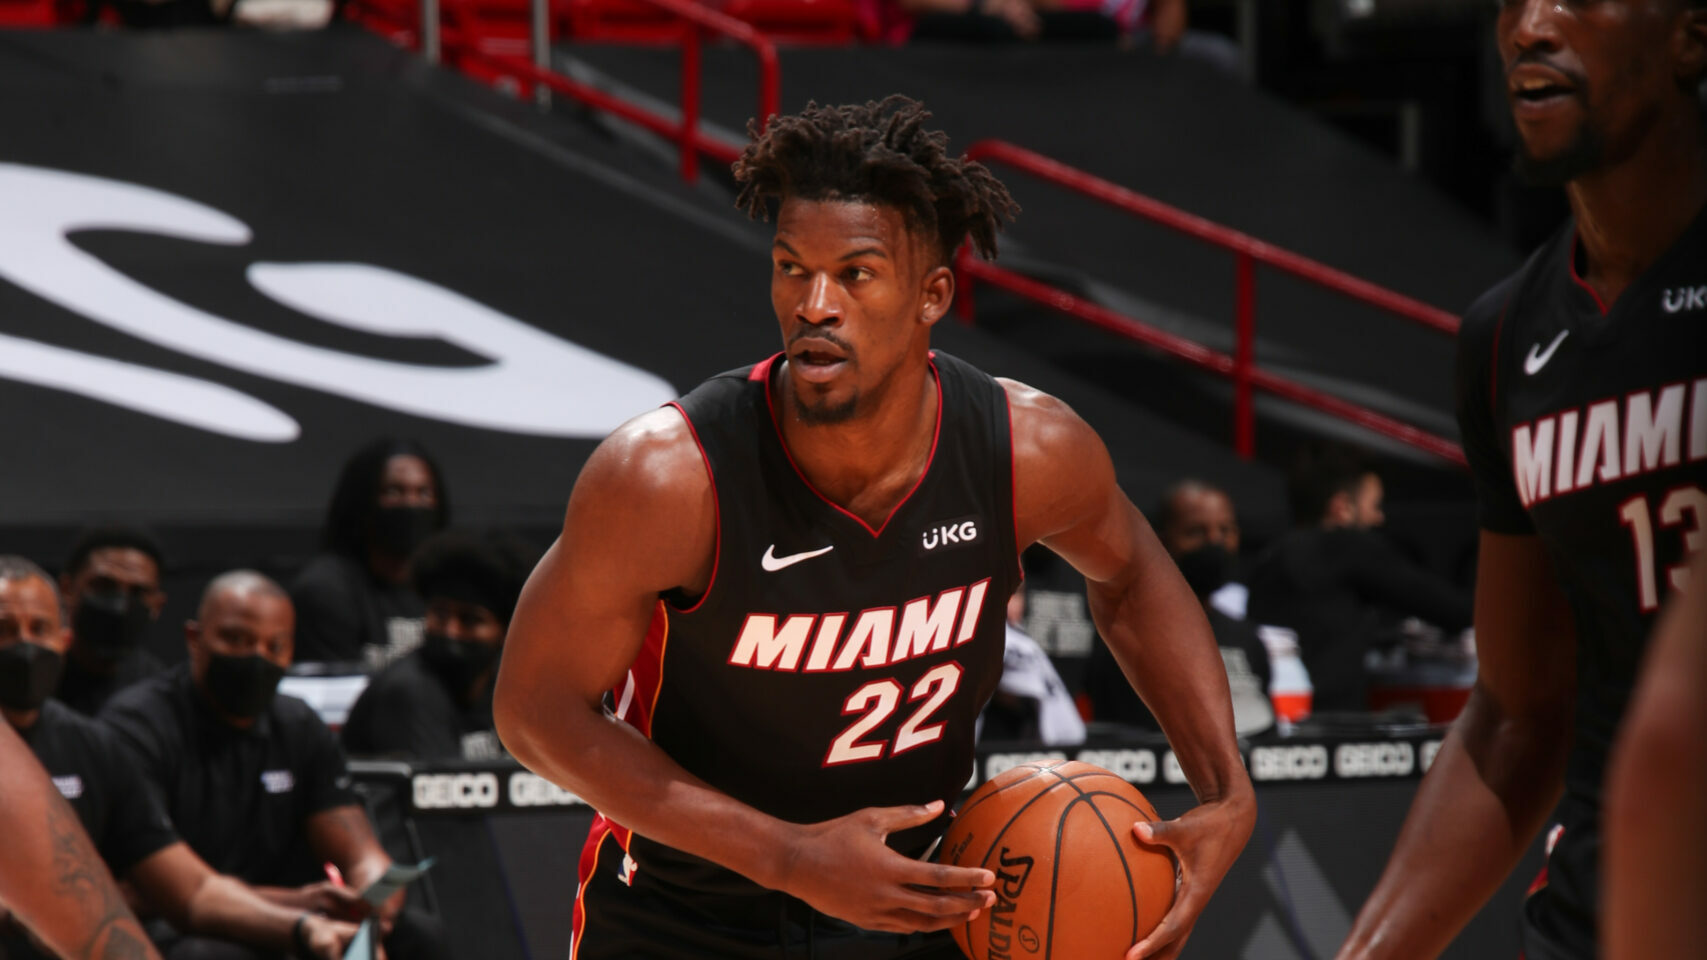 Heat's lineup shuffling continues as Jimmy Butler sits, Tyler Herro returns